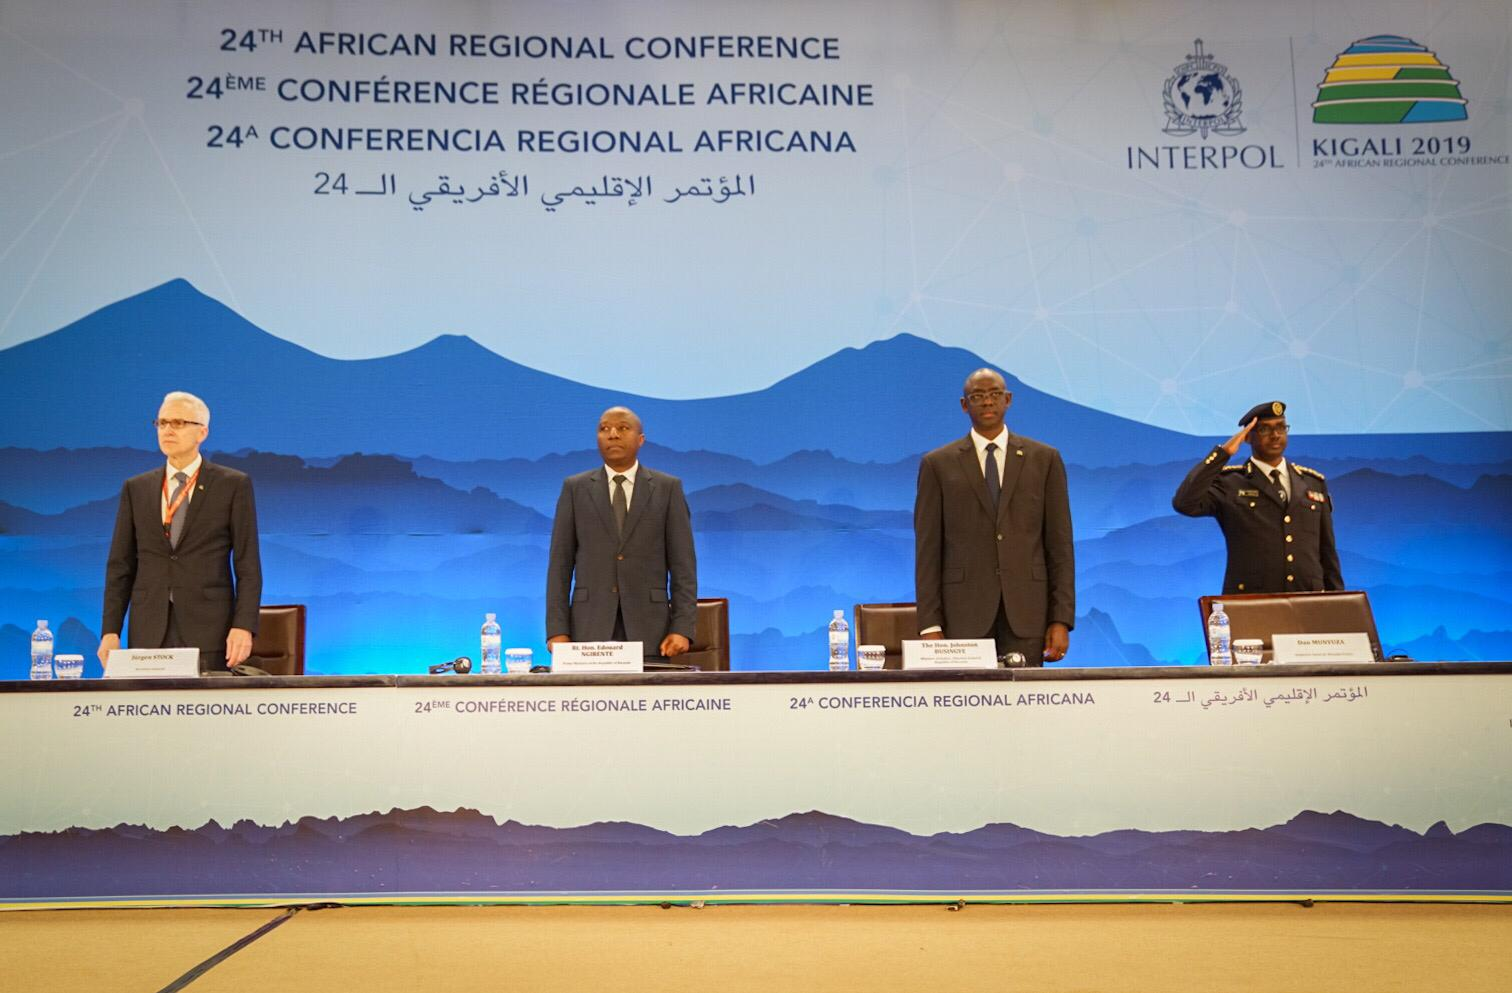 Rwandan Prime Minister Edouard Ngirente officially opened the INTERPOL African Regional Conference.